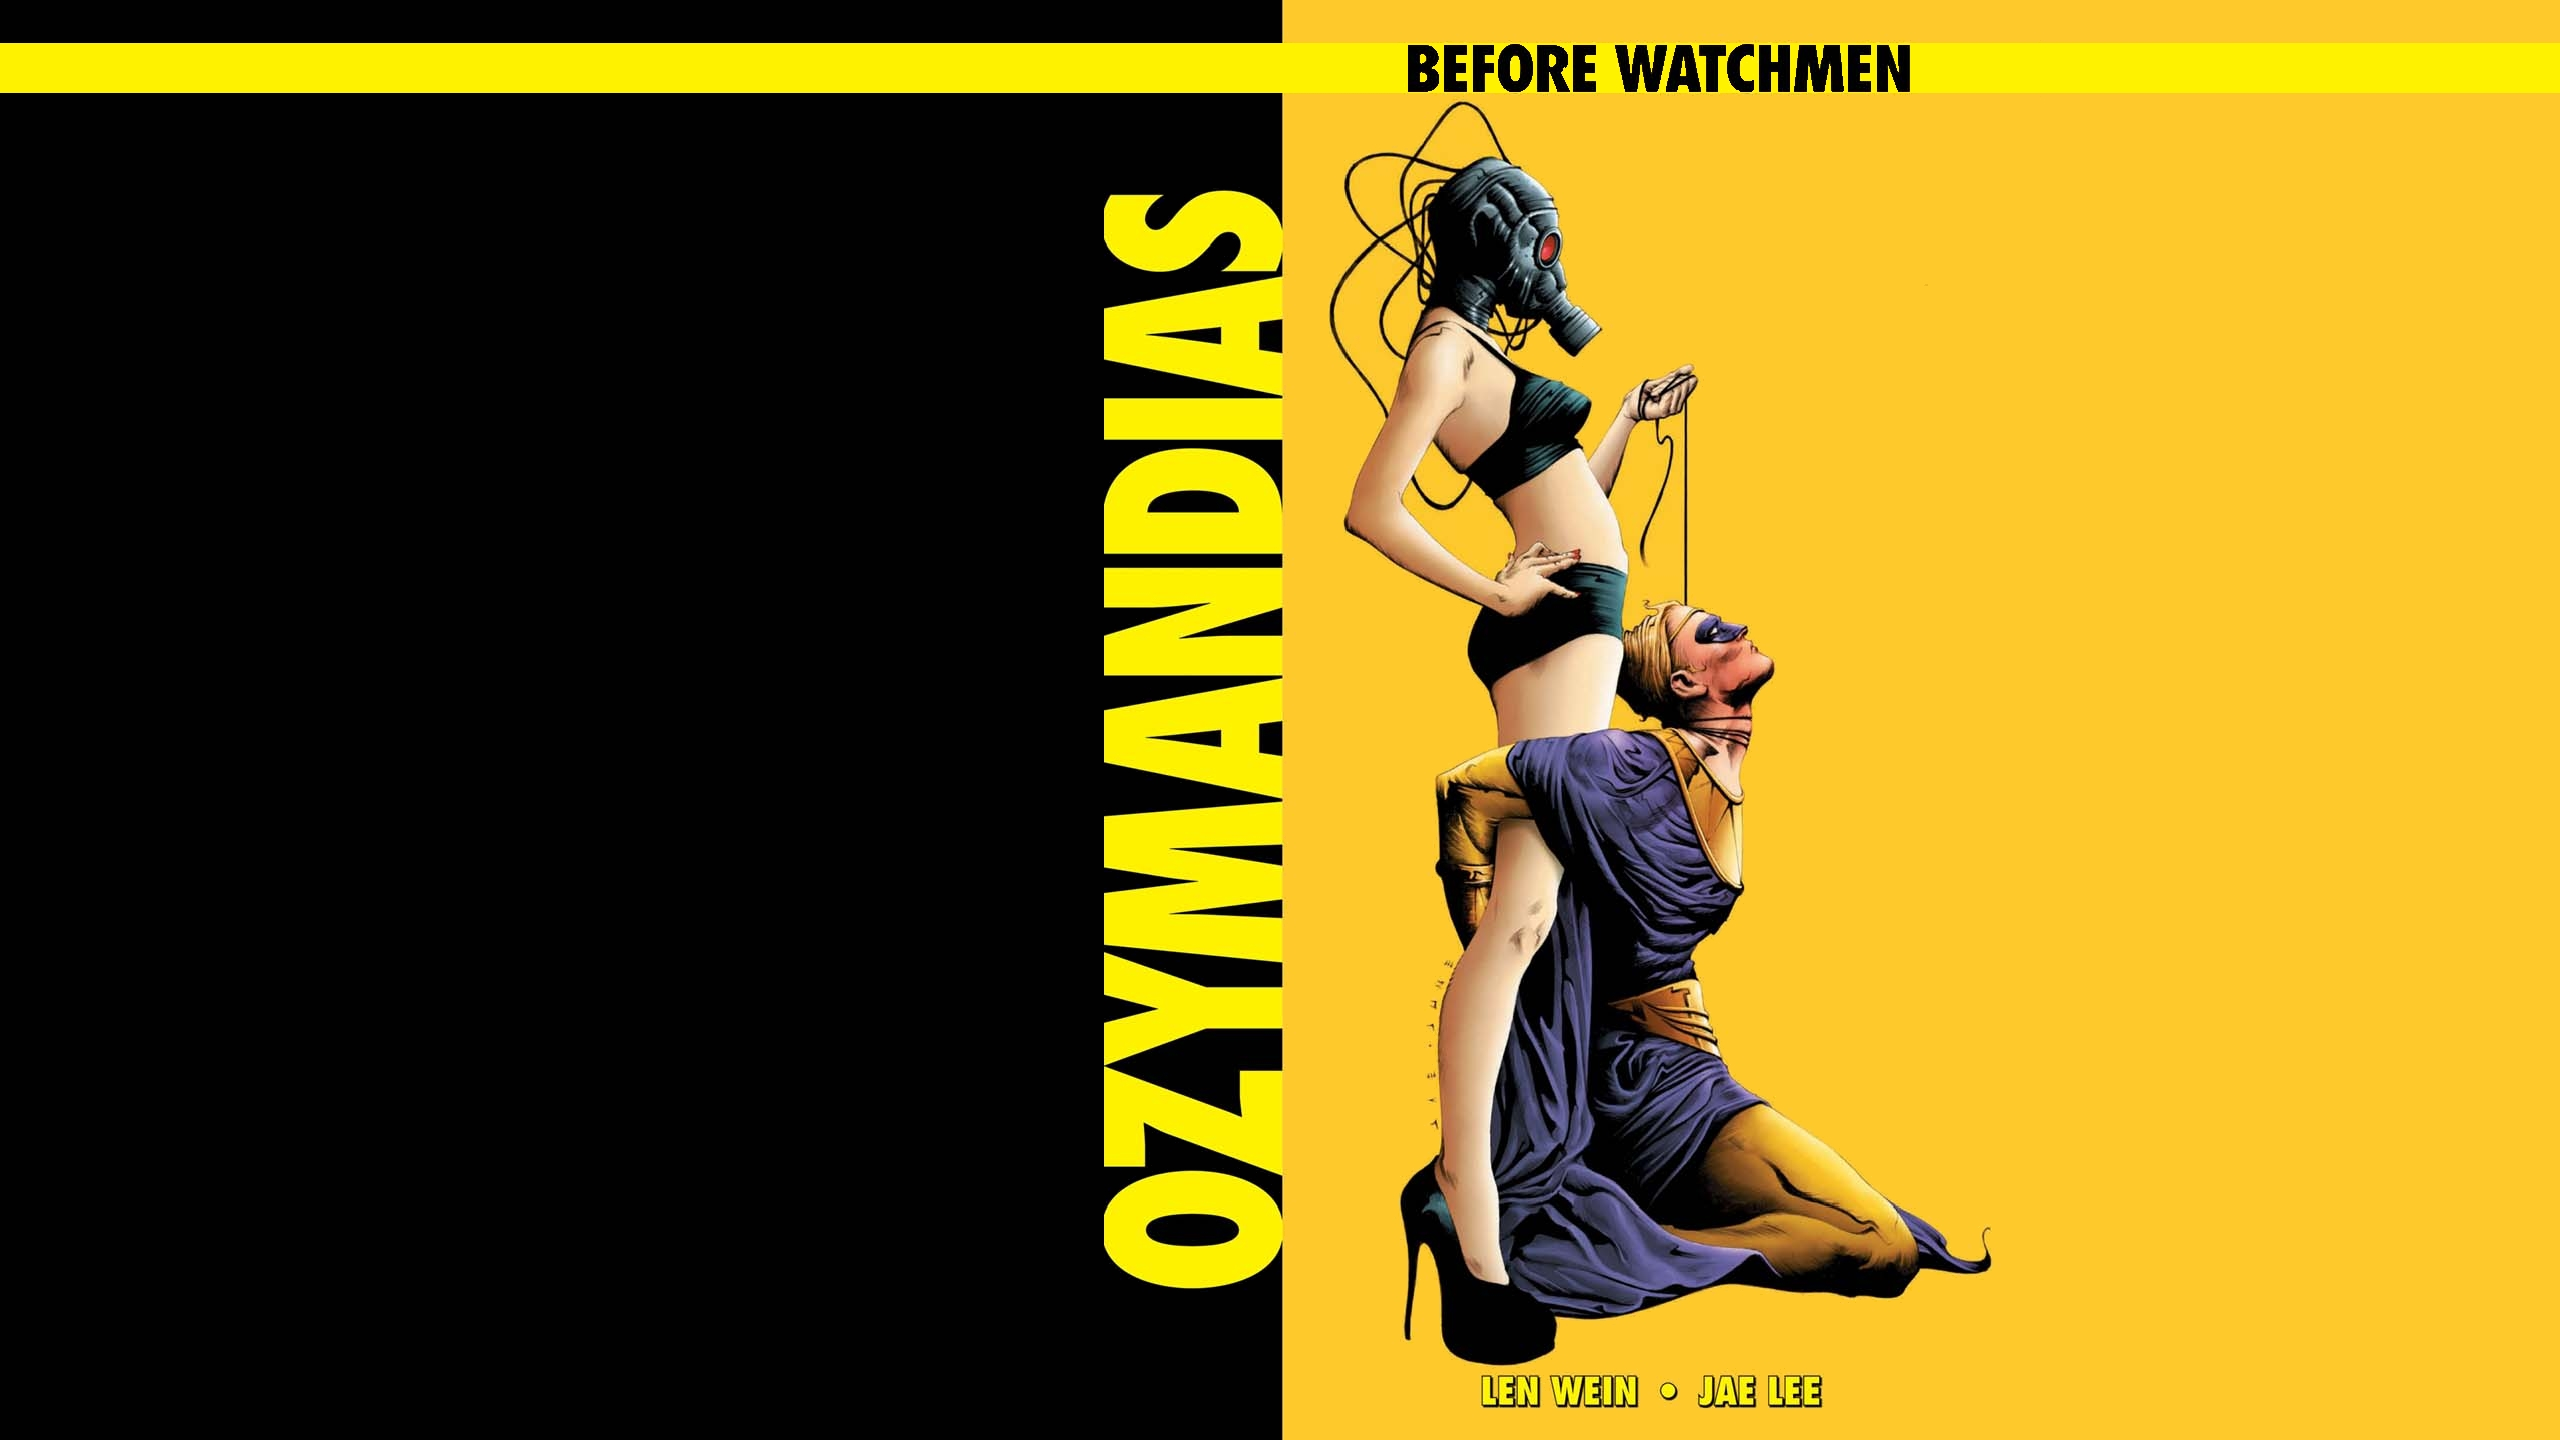 before watchmen full hd wallpaper and background image | 2560x1440